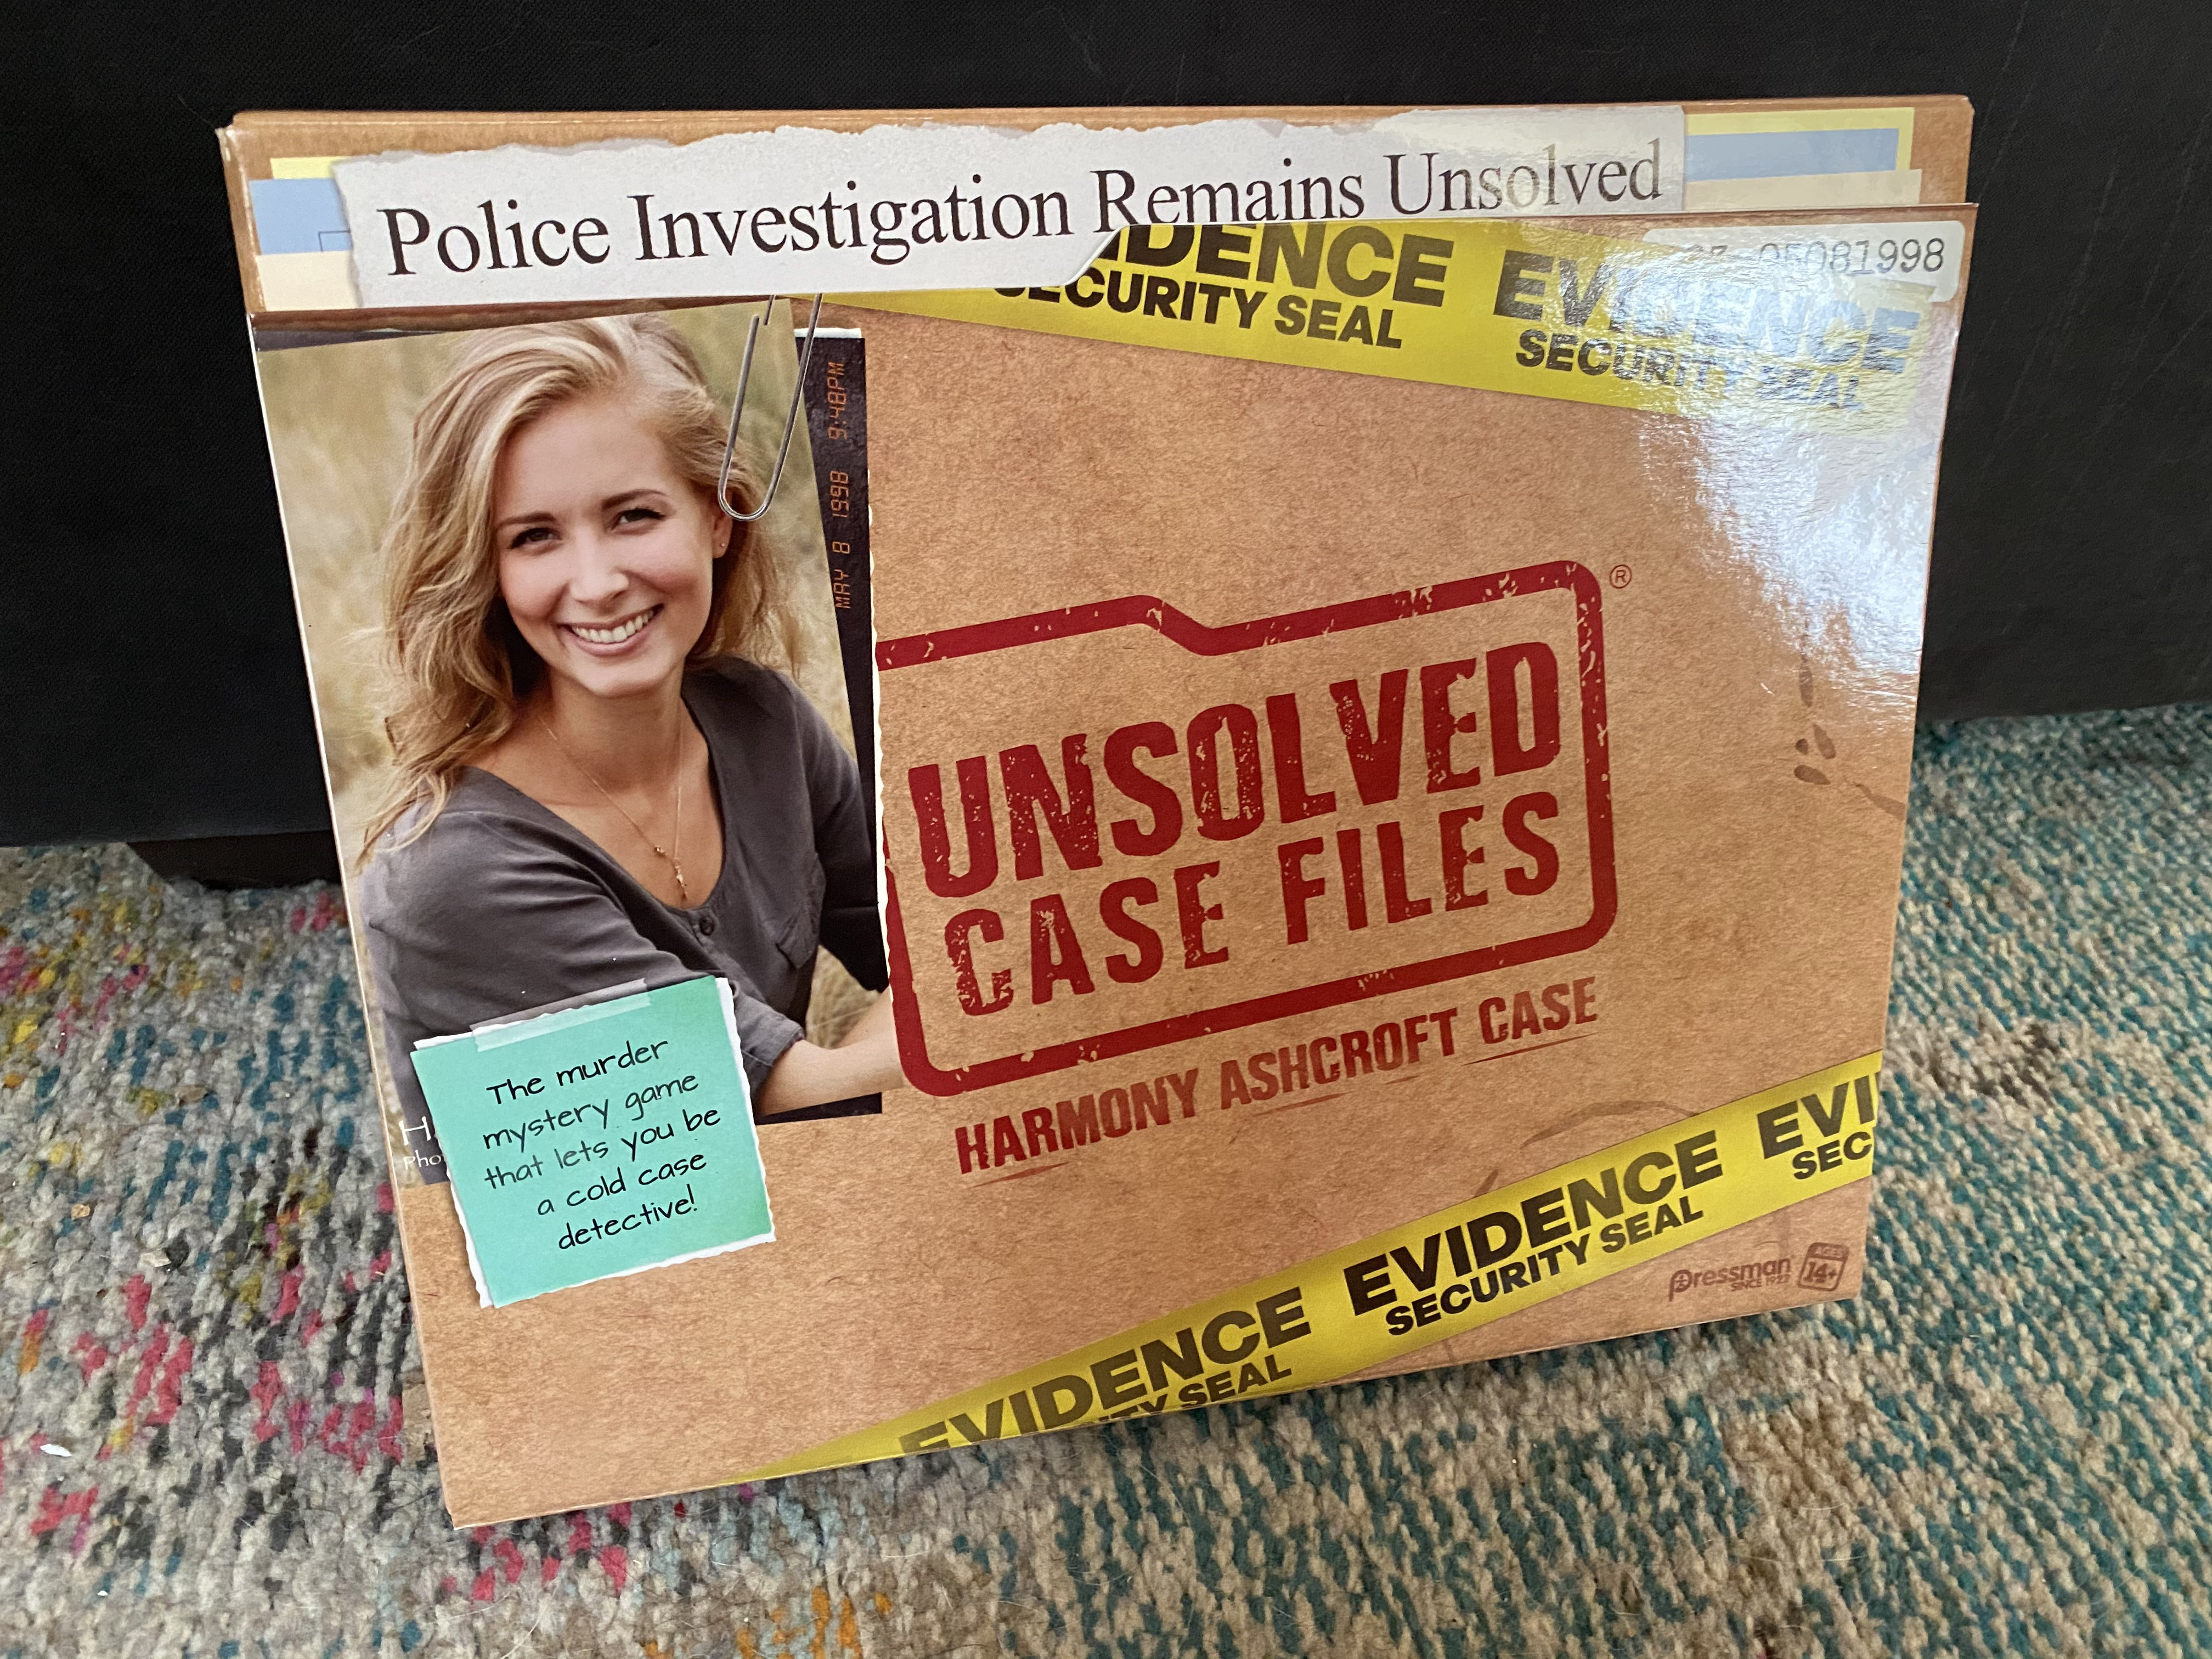 The box for the Harmony Ashcroft case in the Unsolved Case Files series.